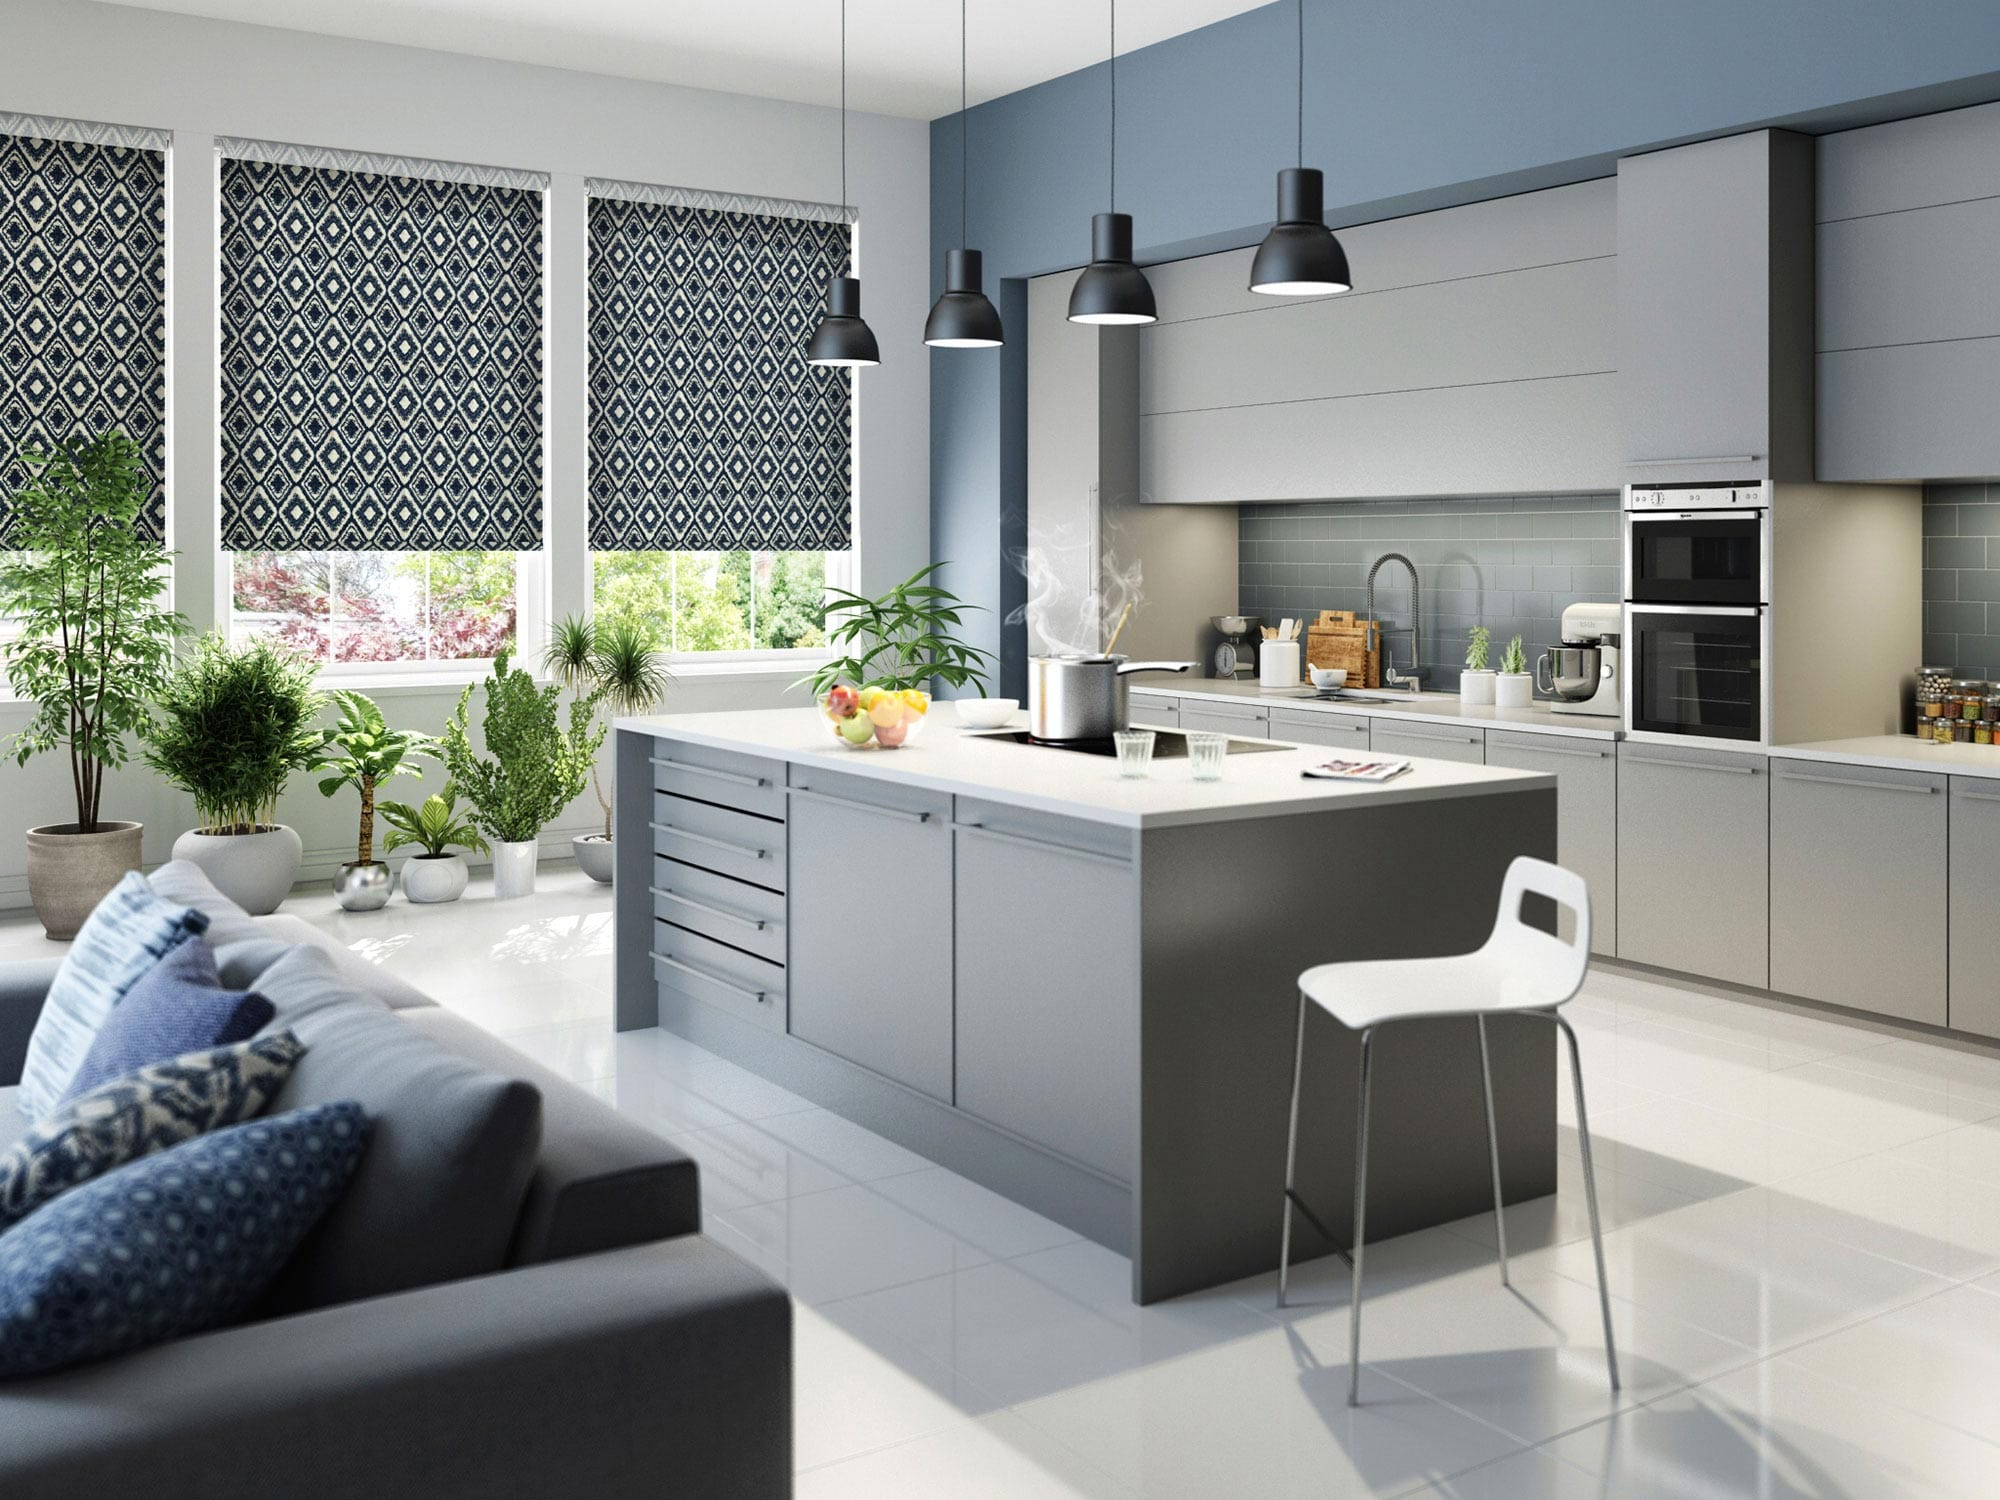 kitchen blinds cost of island roller by tuiss designer featuring sheer voile dark light